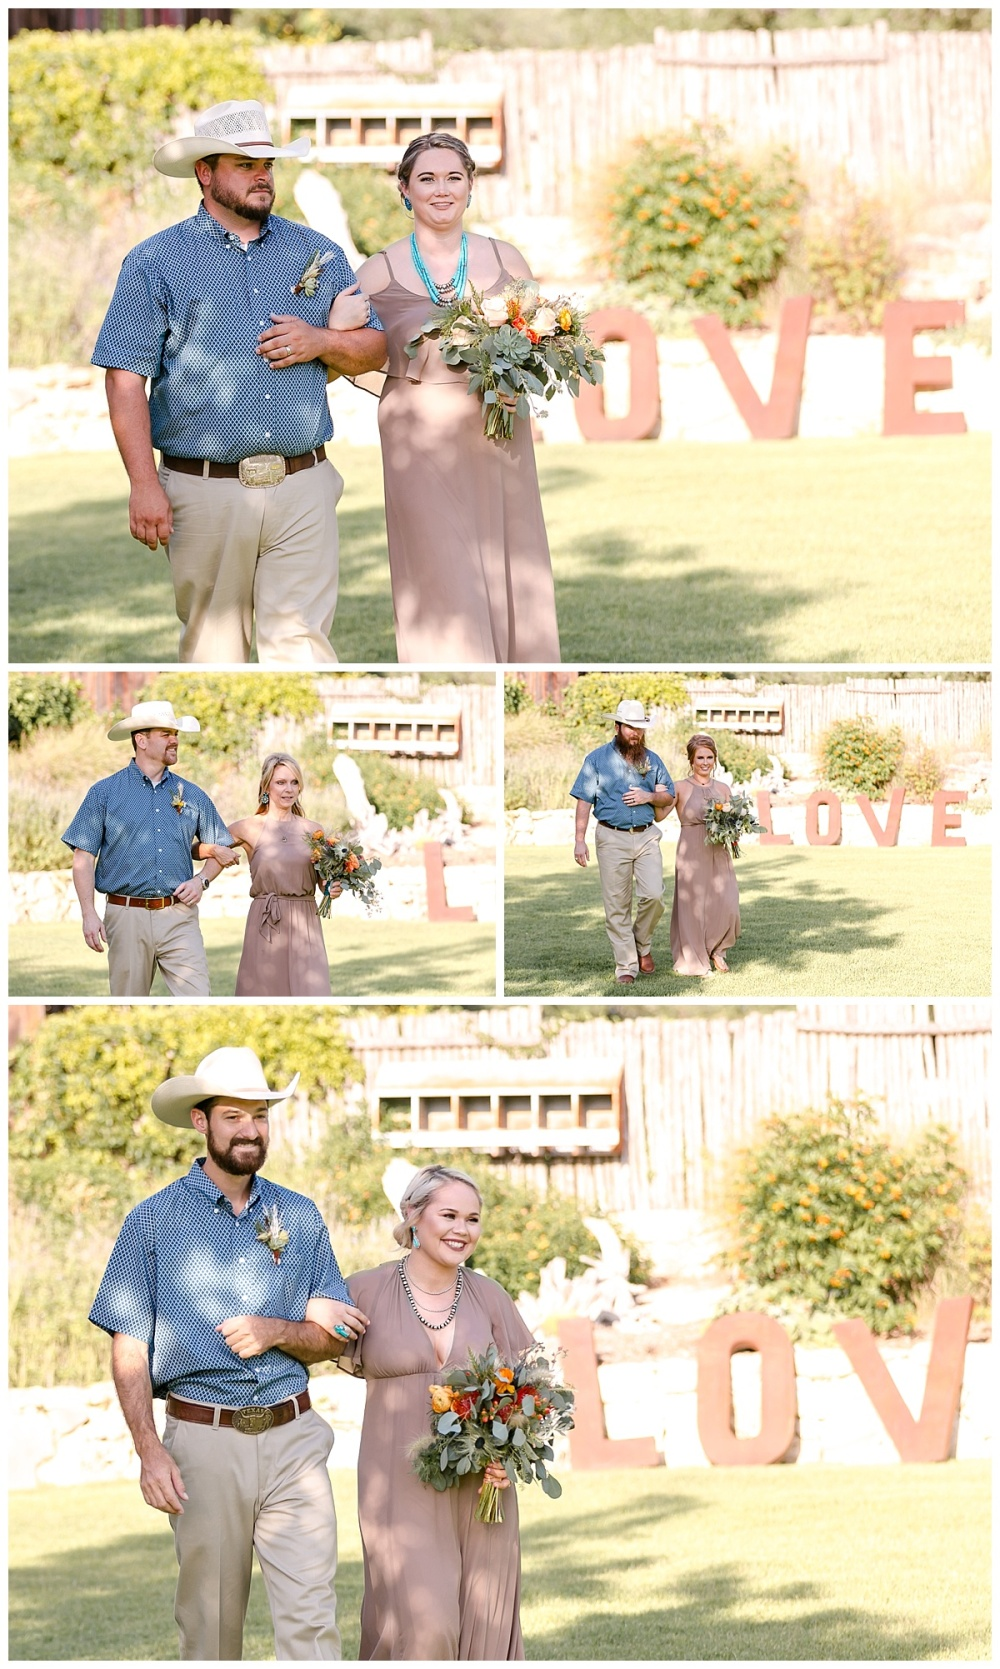 Texas-Wedding-Photographer-Braded-T-Ranch-Kendalia-Bride-Groom-Southwestern-Style-Carly-Barton-Photography-Vogt_0027.jpg